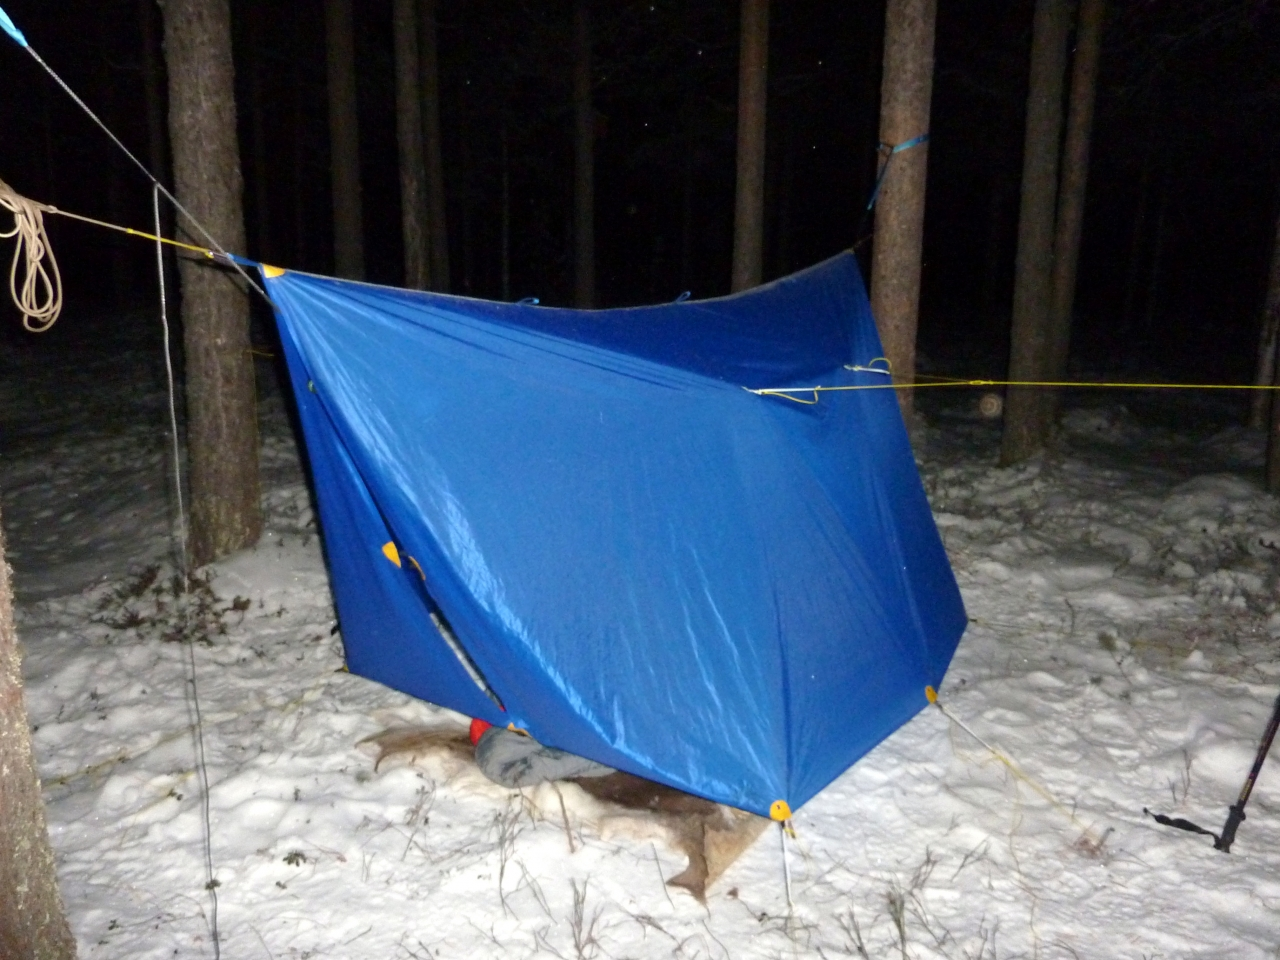 Hammocking In -11 F